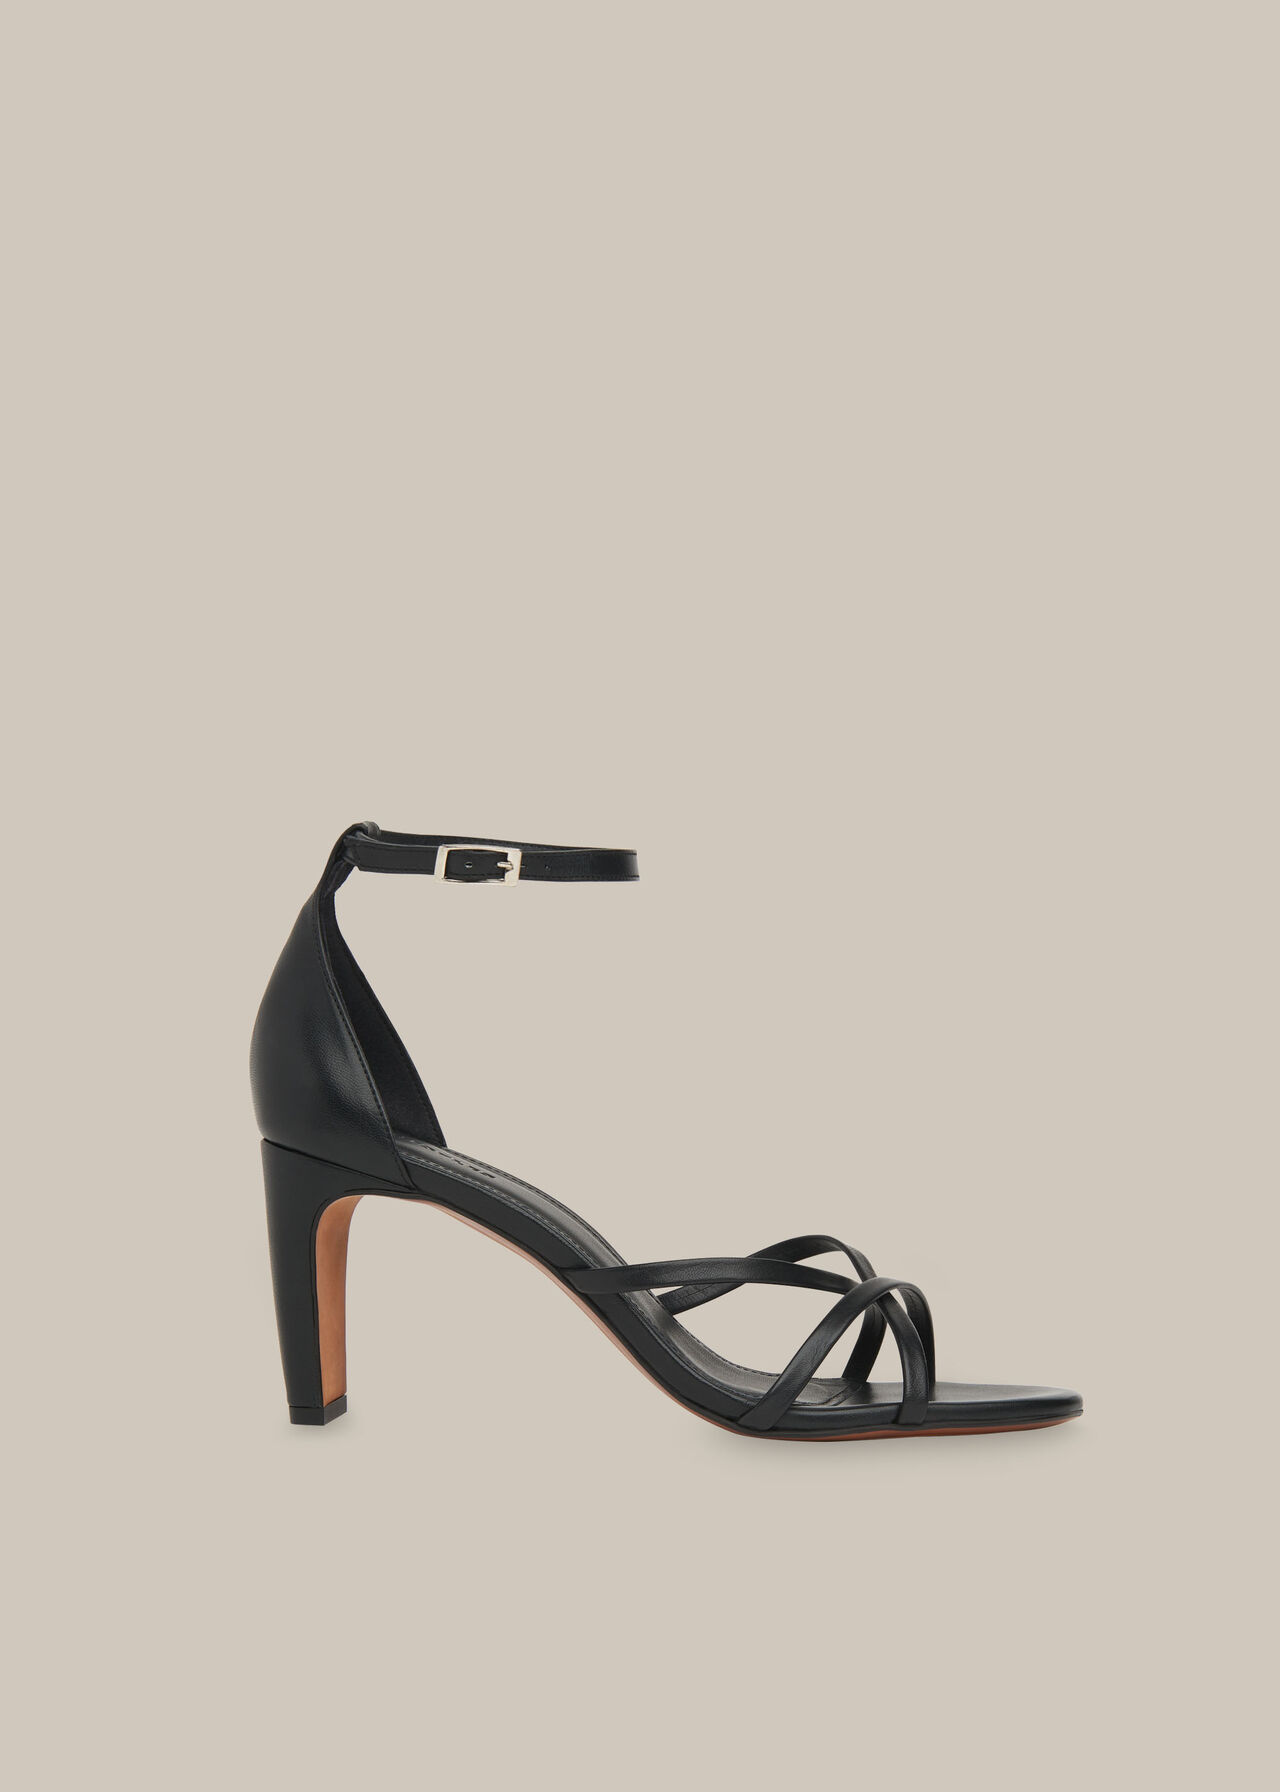 Hallie Strappy High Sandal